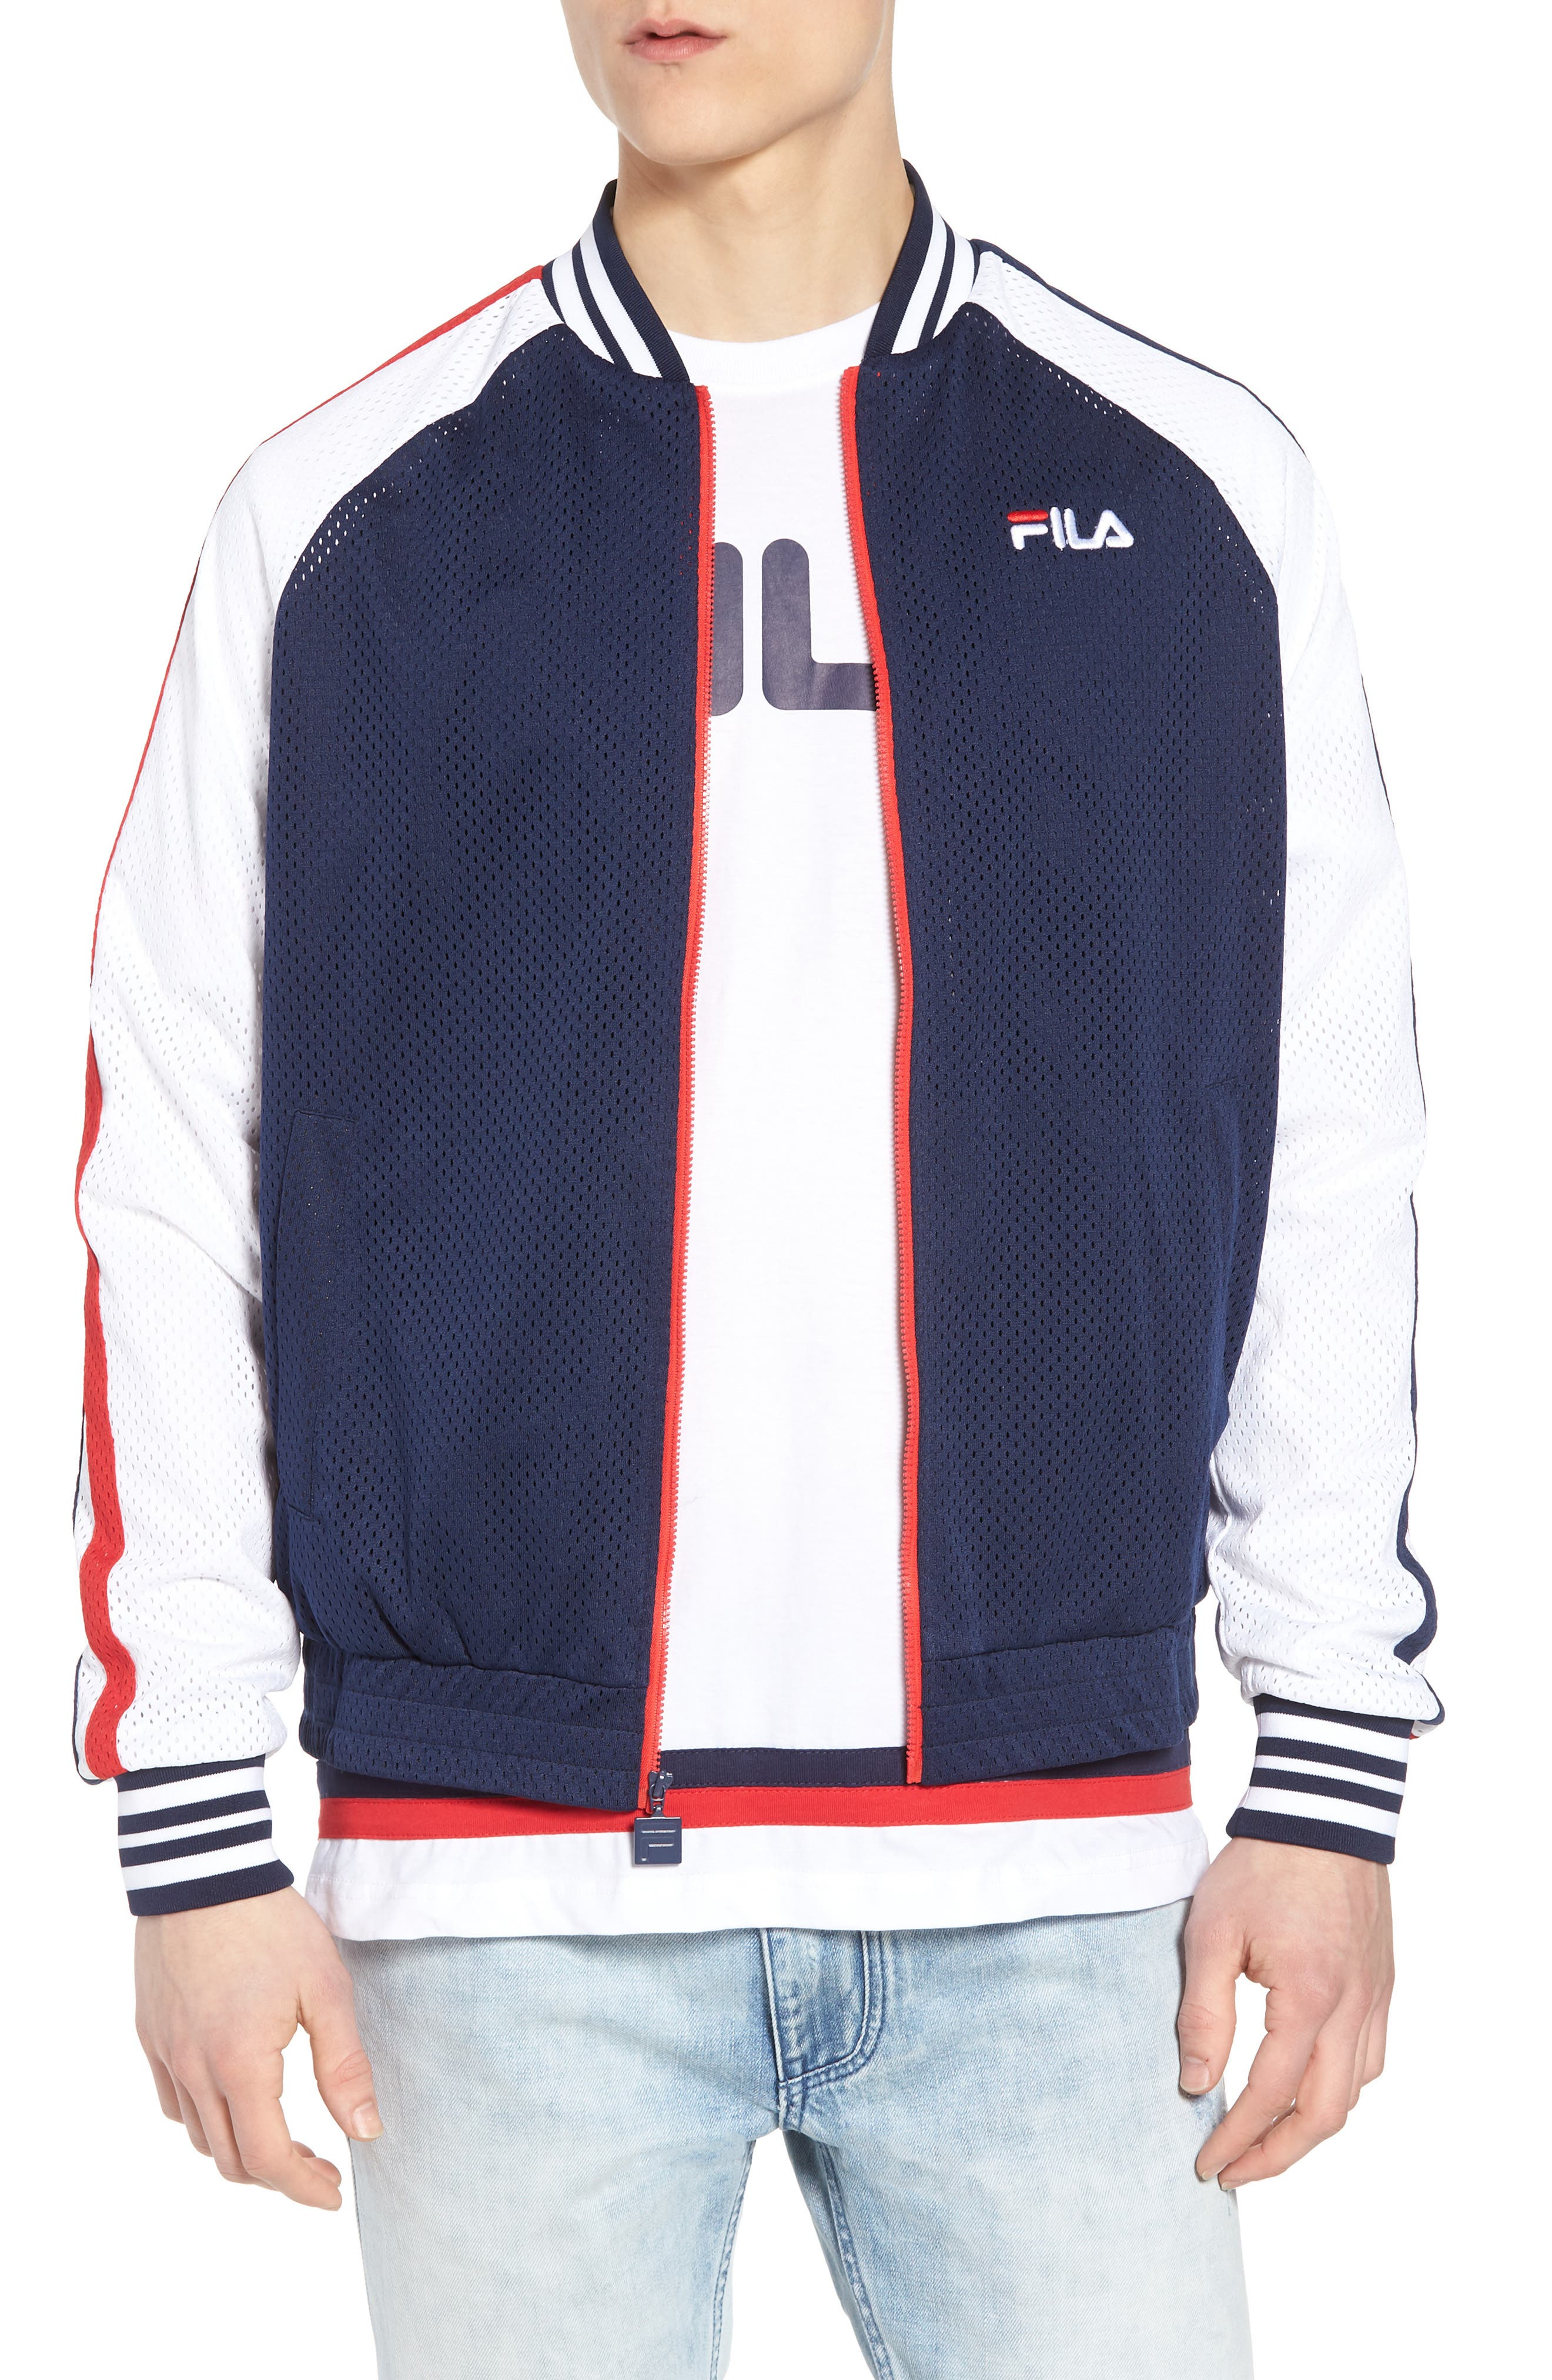 Lucas Jacket,                             Main thumbnail 1, color,                             Peacoat/ White/ Chinese Red